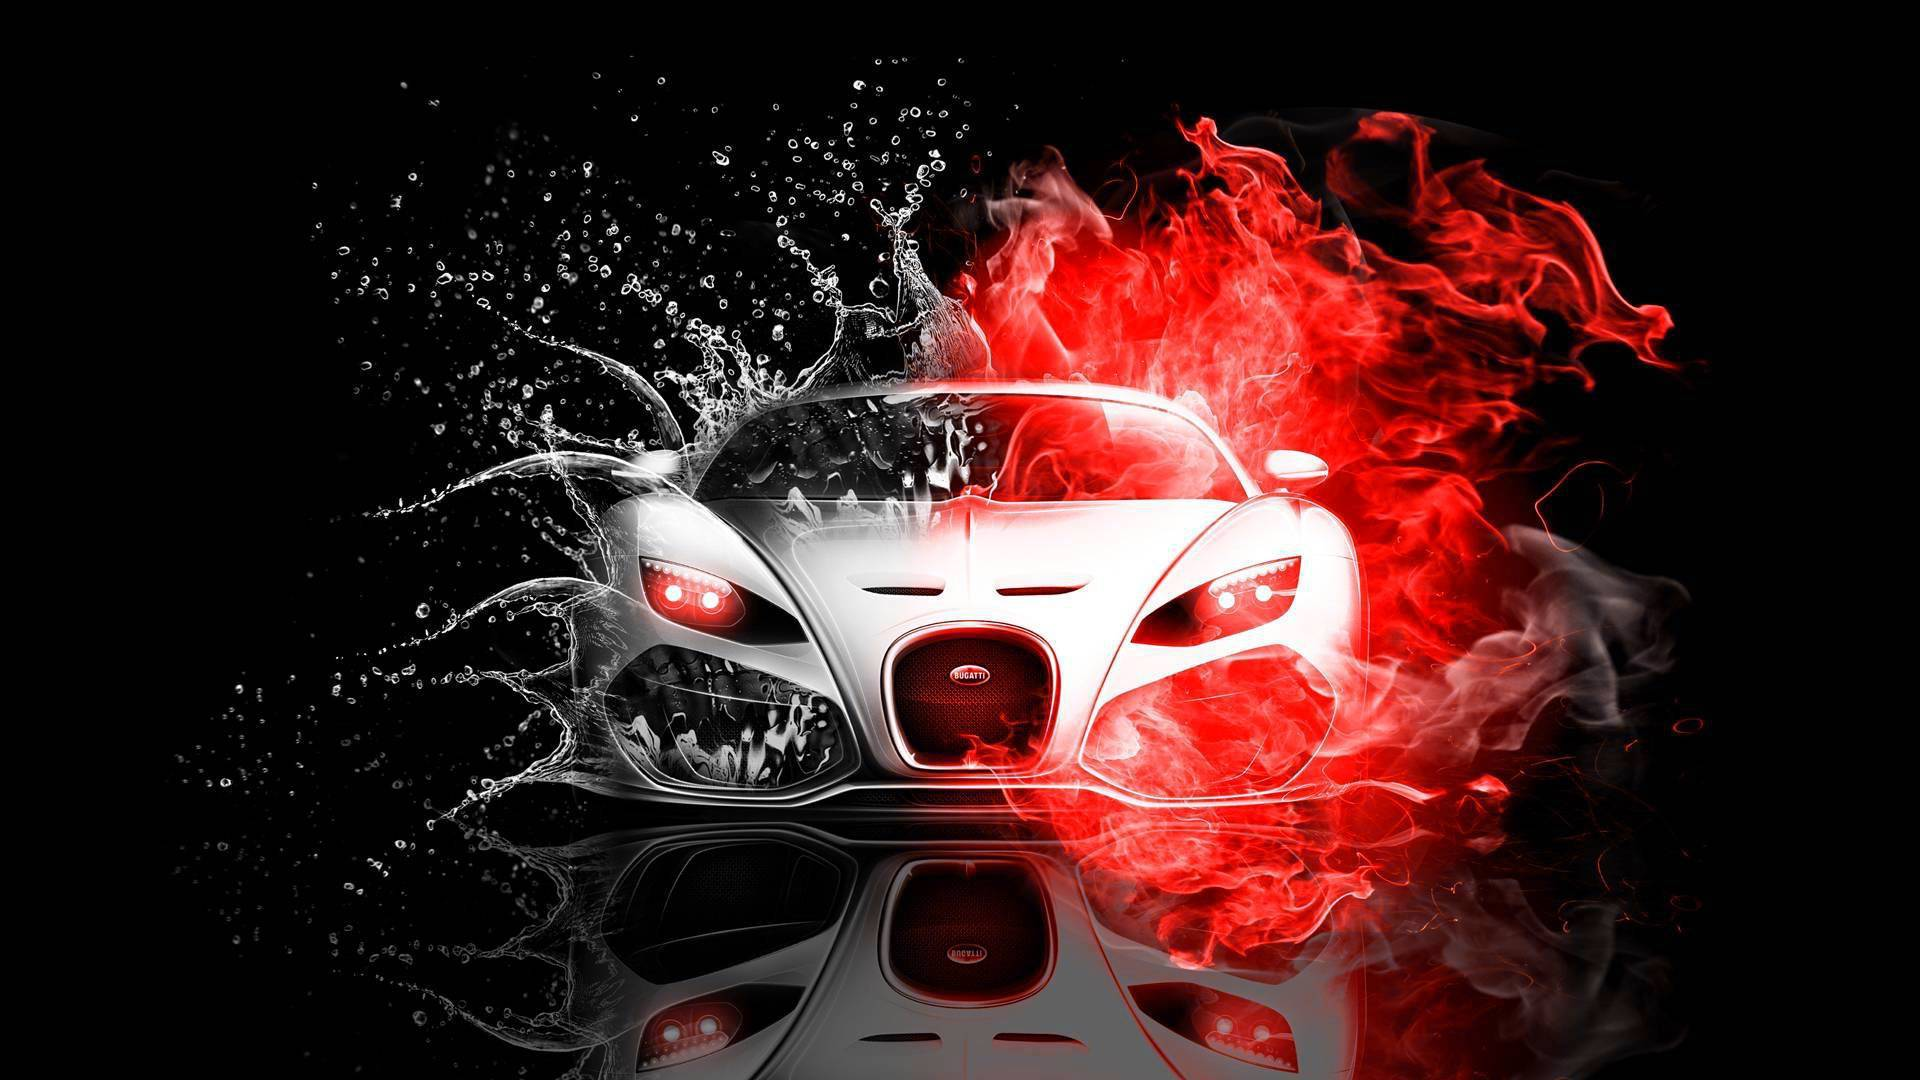 Looks - Furious and fast 7 cars wallpapers photo video